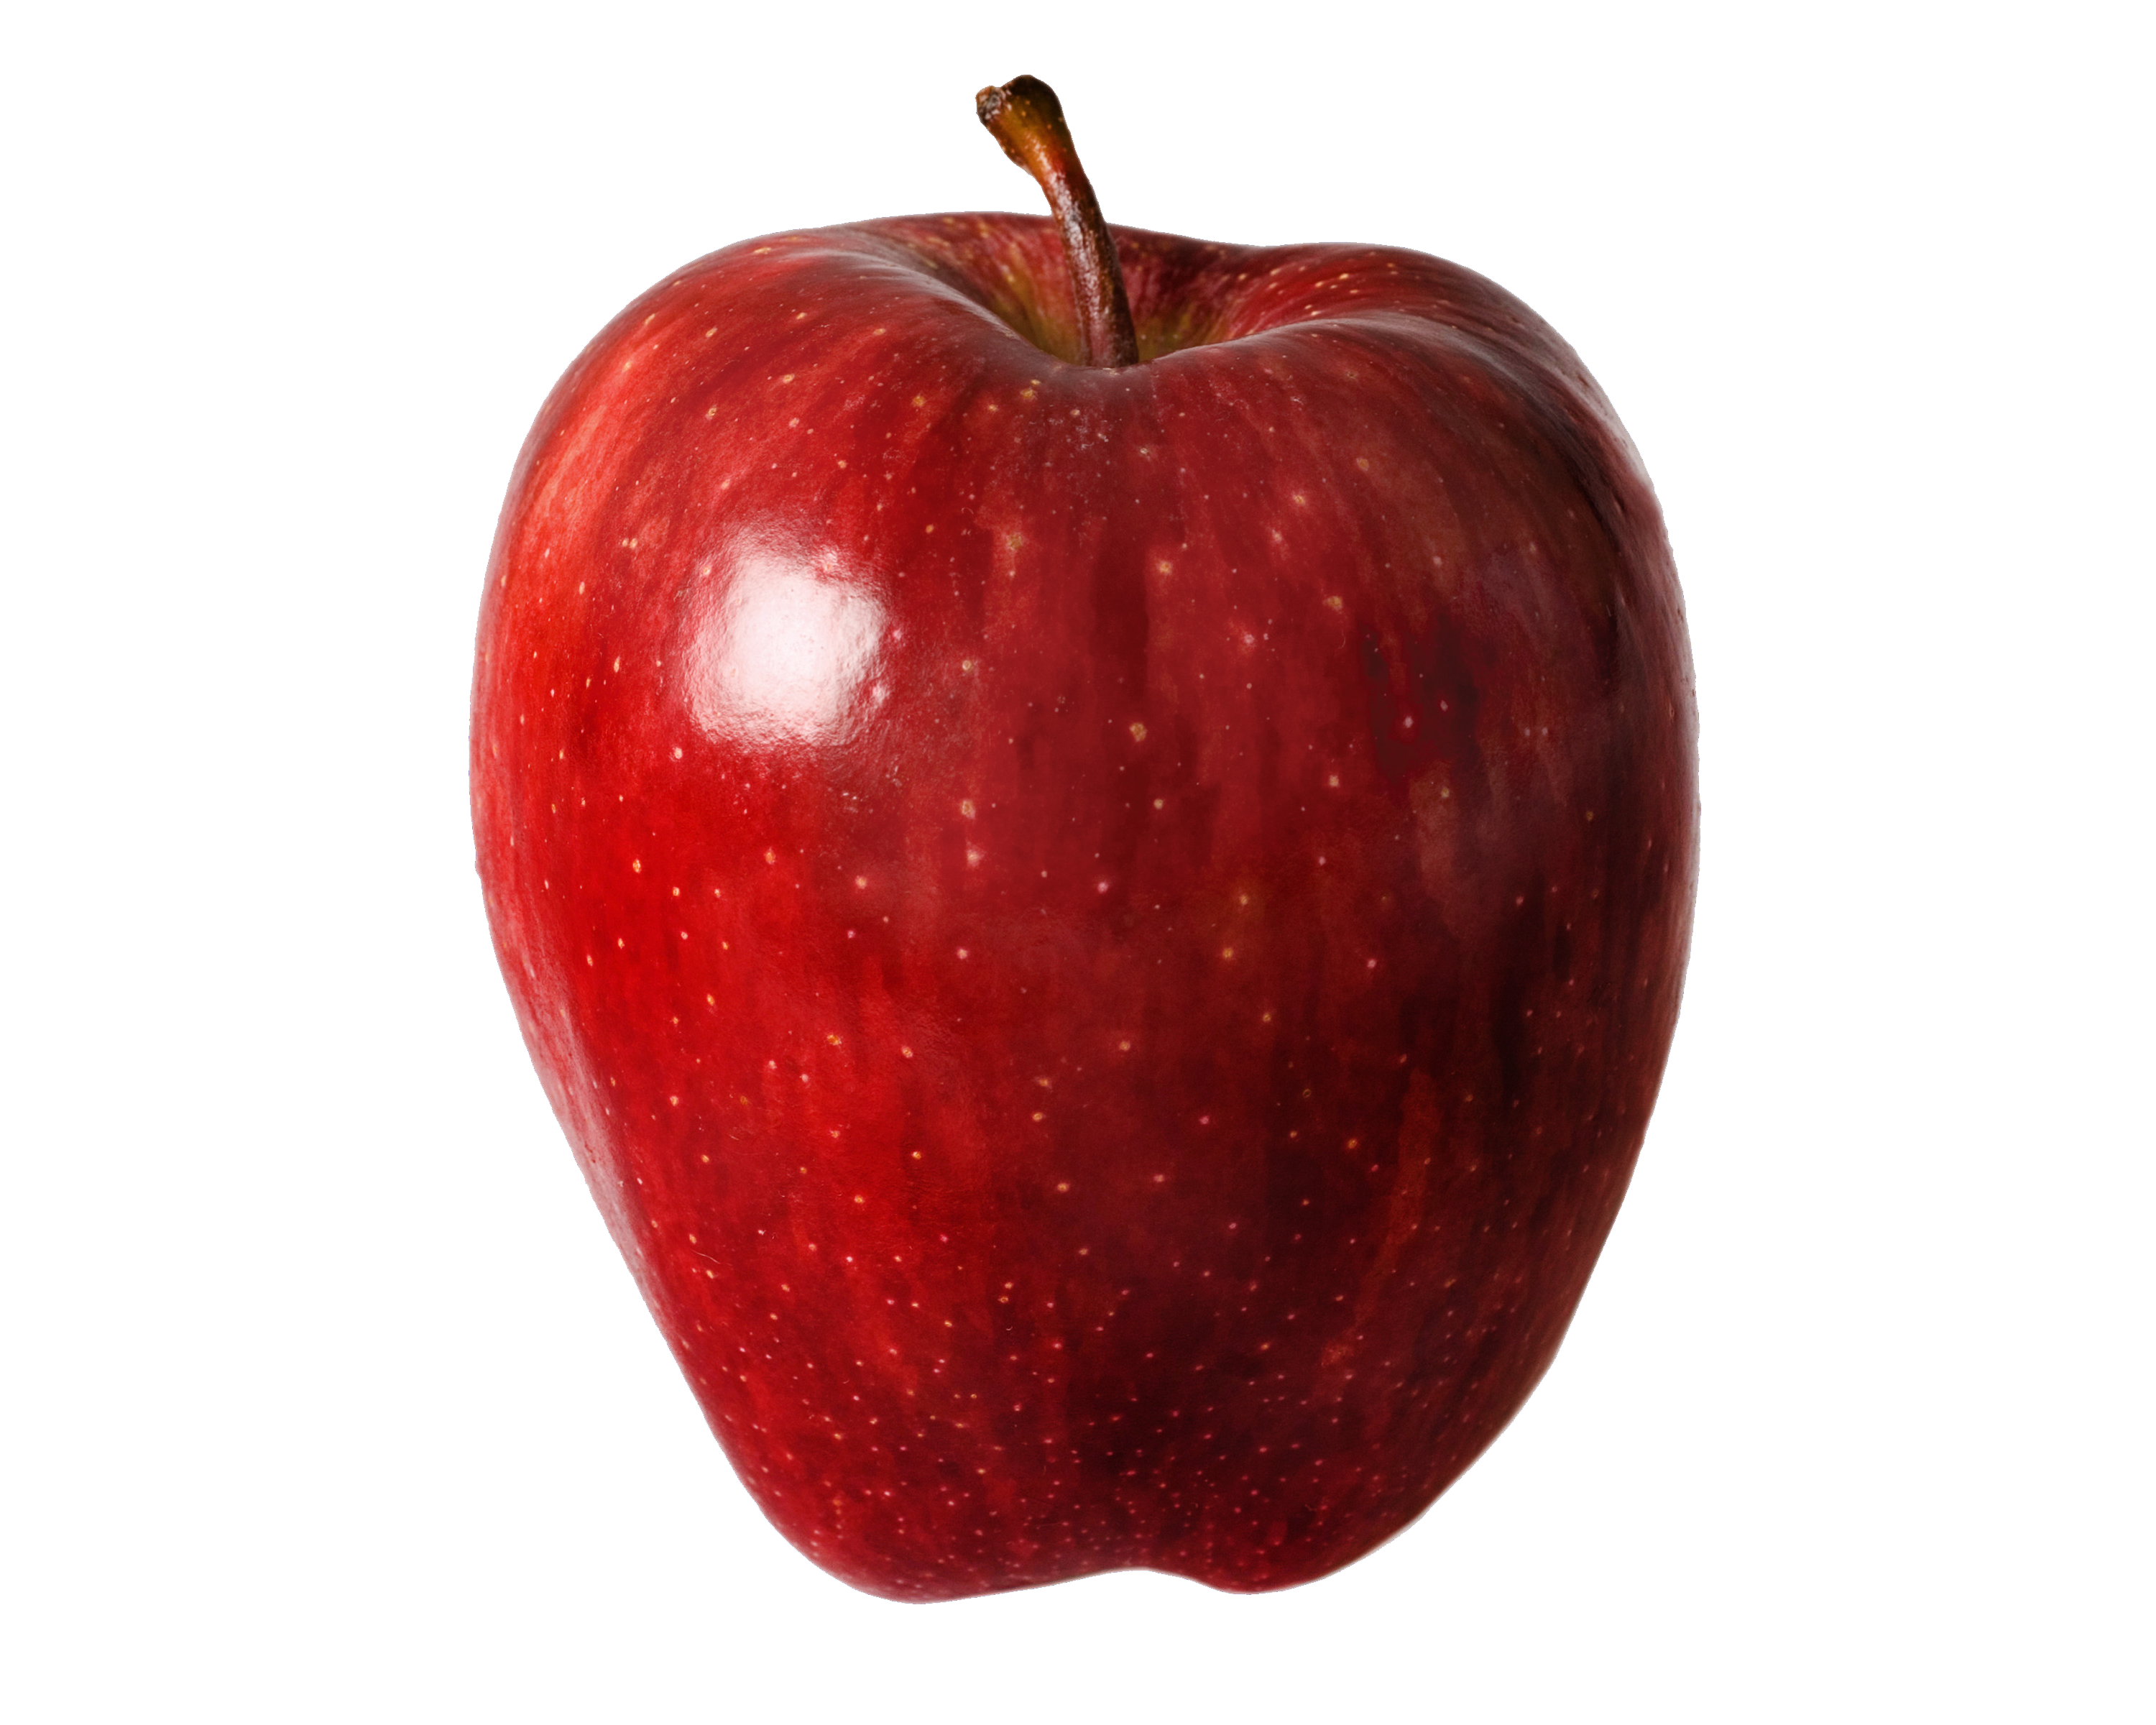 red apple PNG - Apple HD PNG